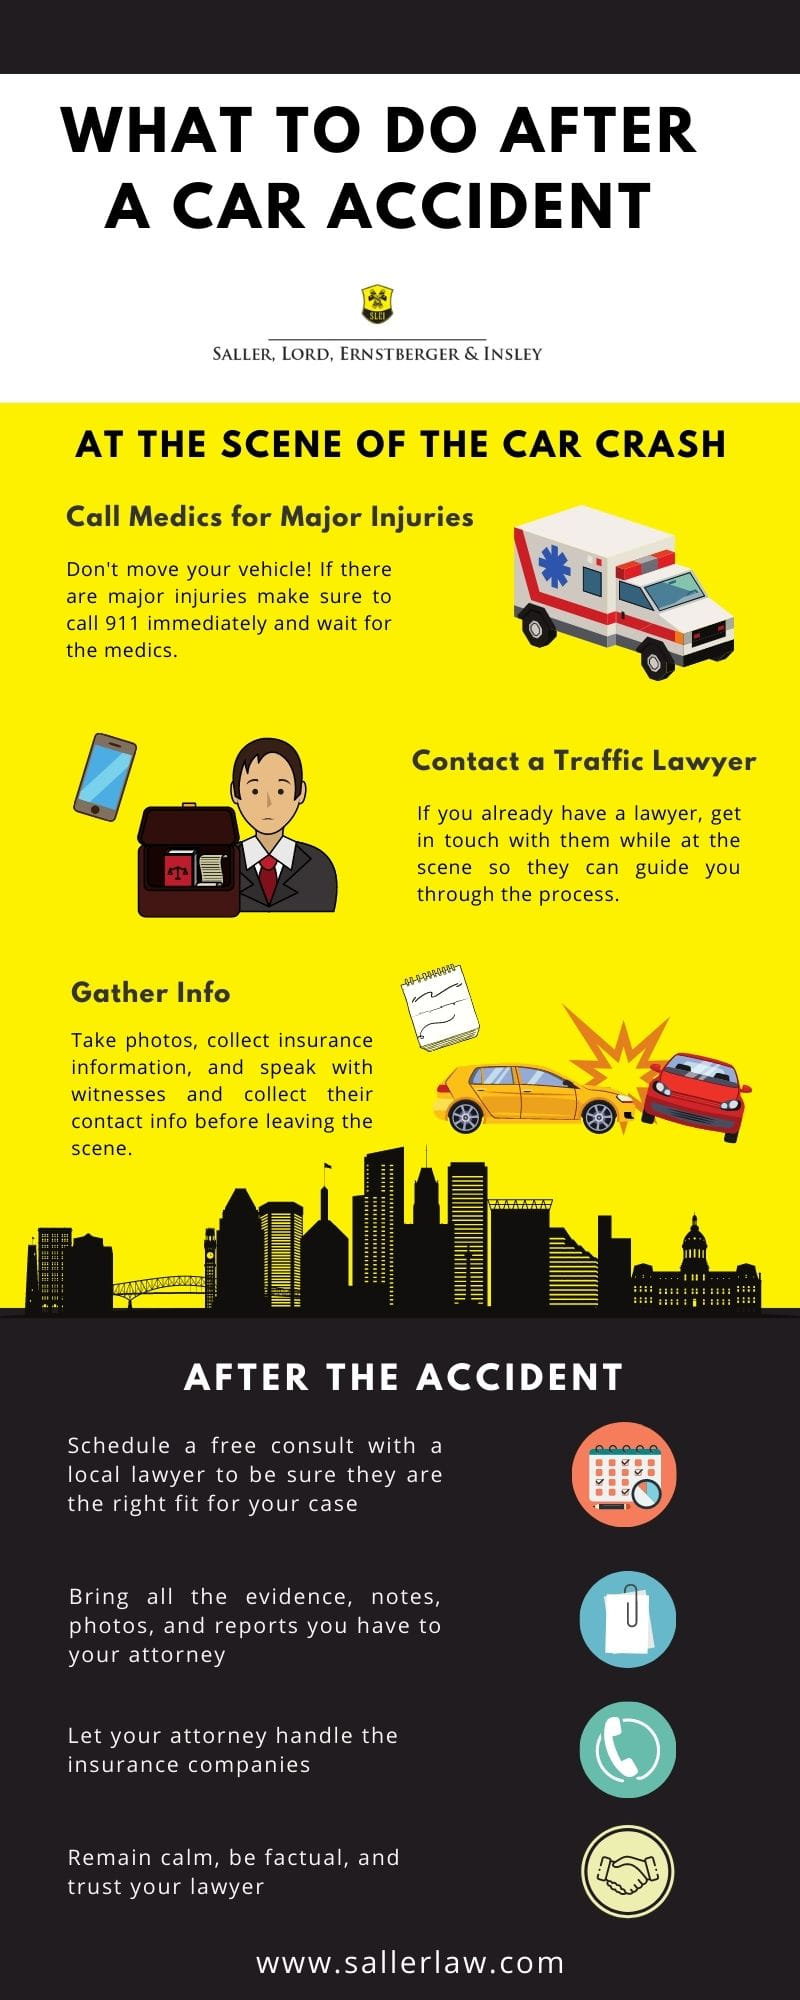 When Should I Hire an Attorney After a Car Accident